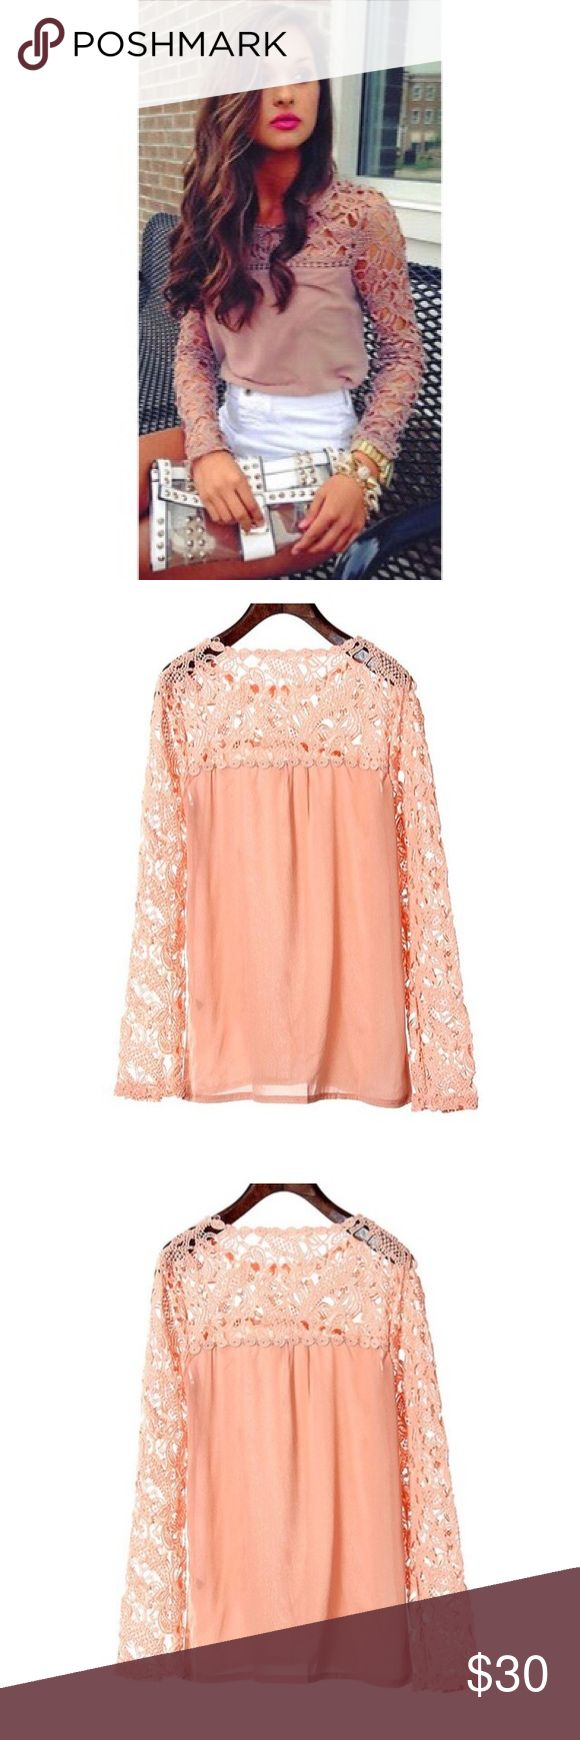 ✨Lace Long Sleeve Blouse✨ ✨Sexy Slim tshirt women Women Lace Crochet Embroidery Tops Long Sleeve Shirt Casual T shirt . Color:Peach✨ Tops Tees - Long Sleeve